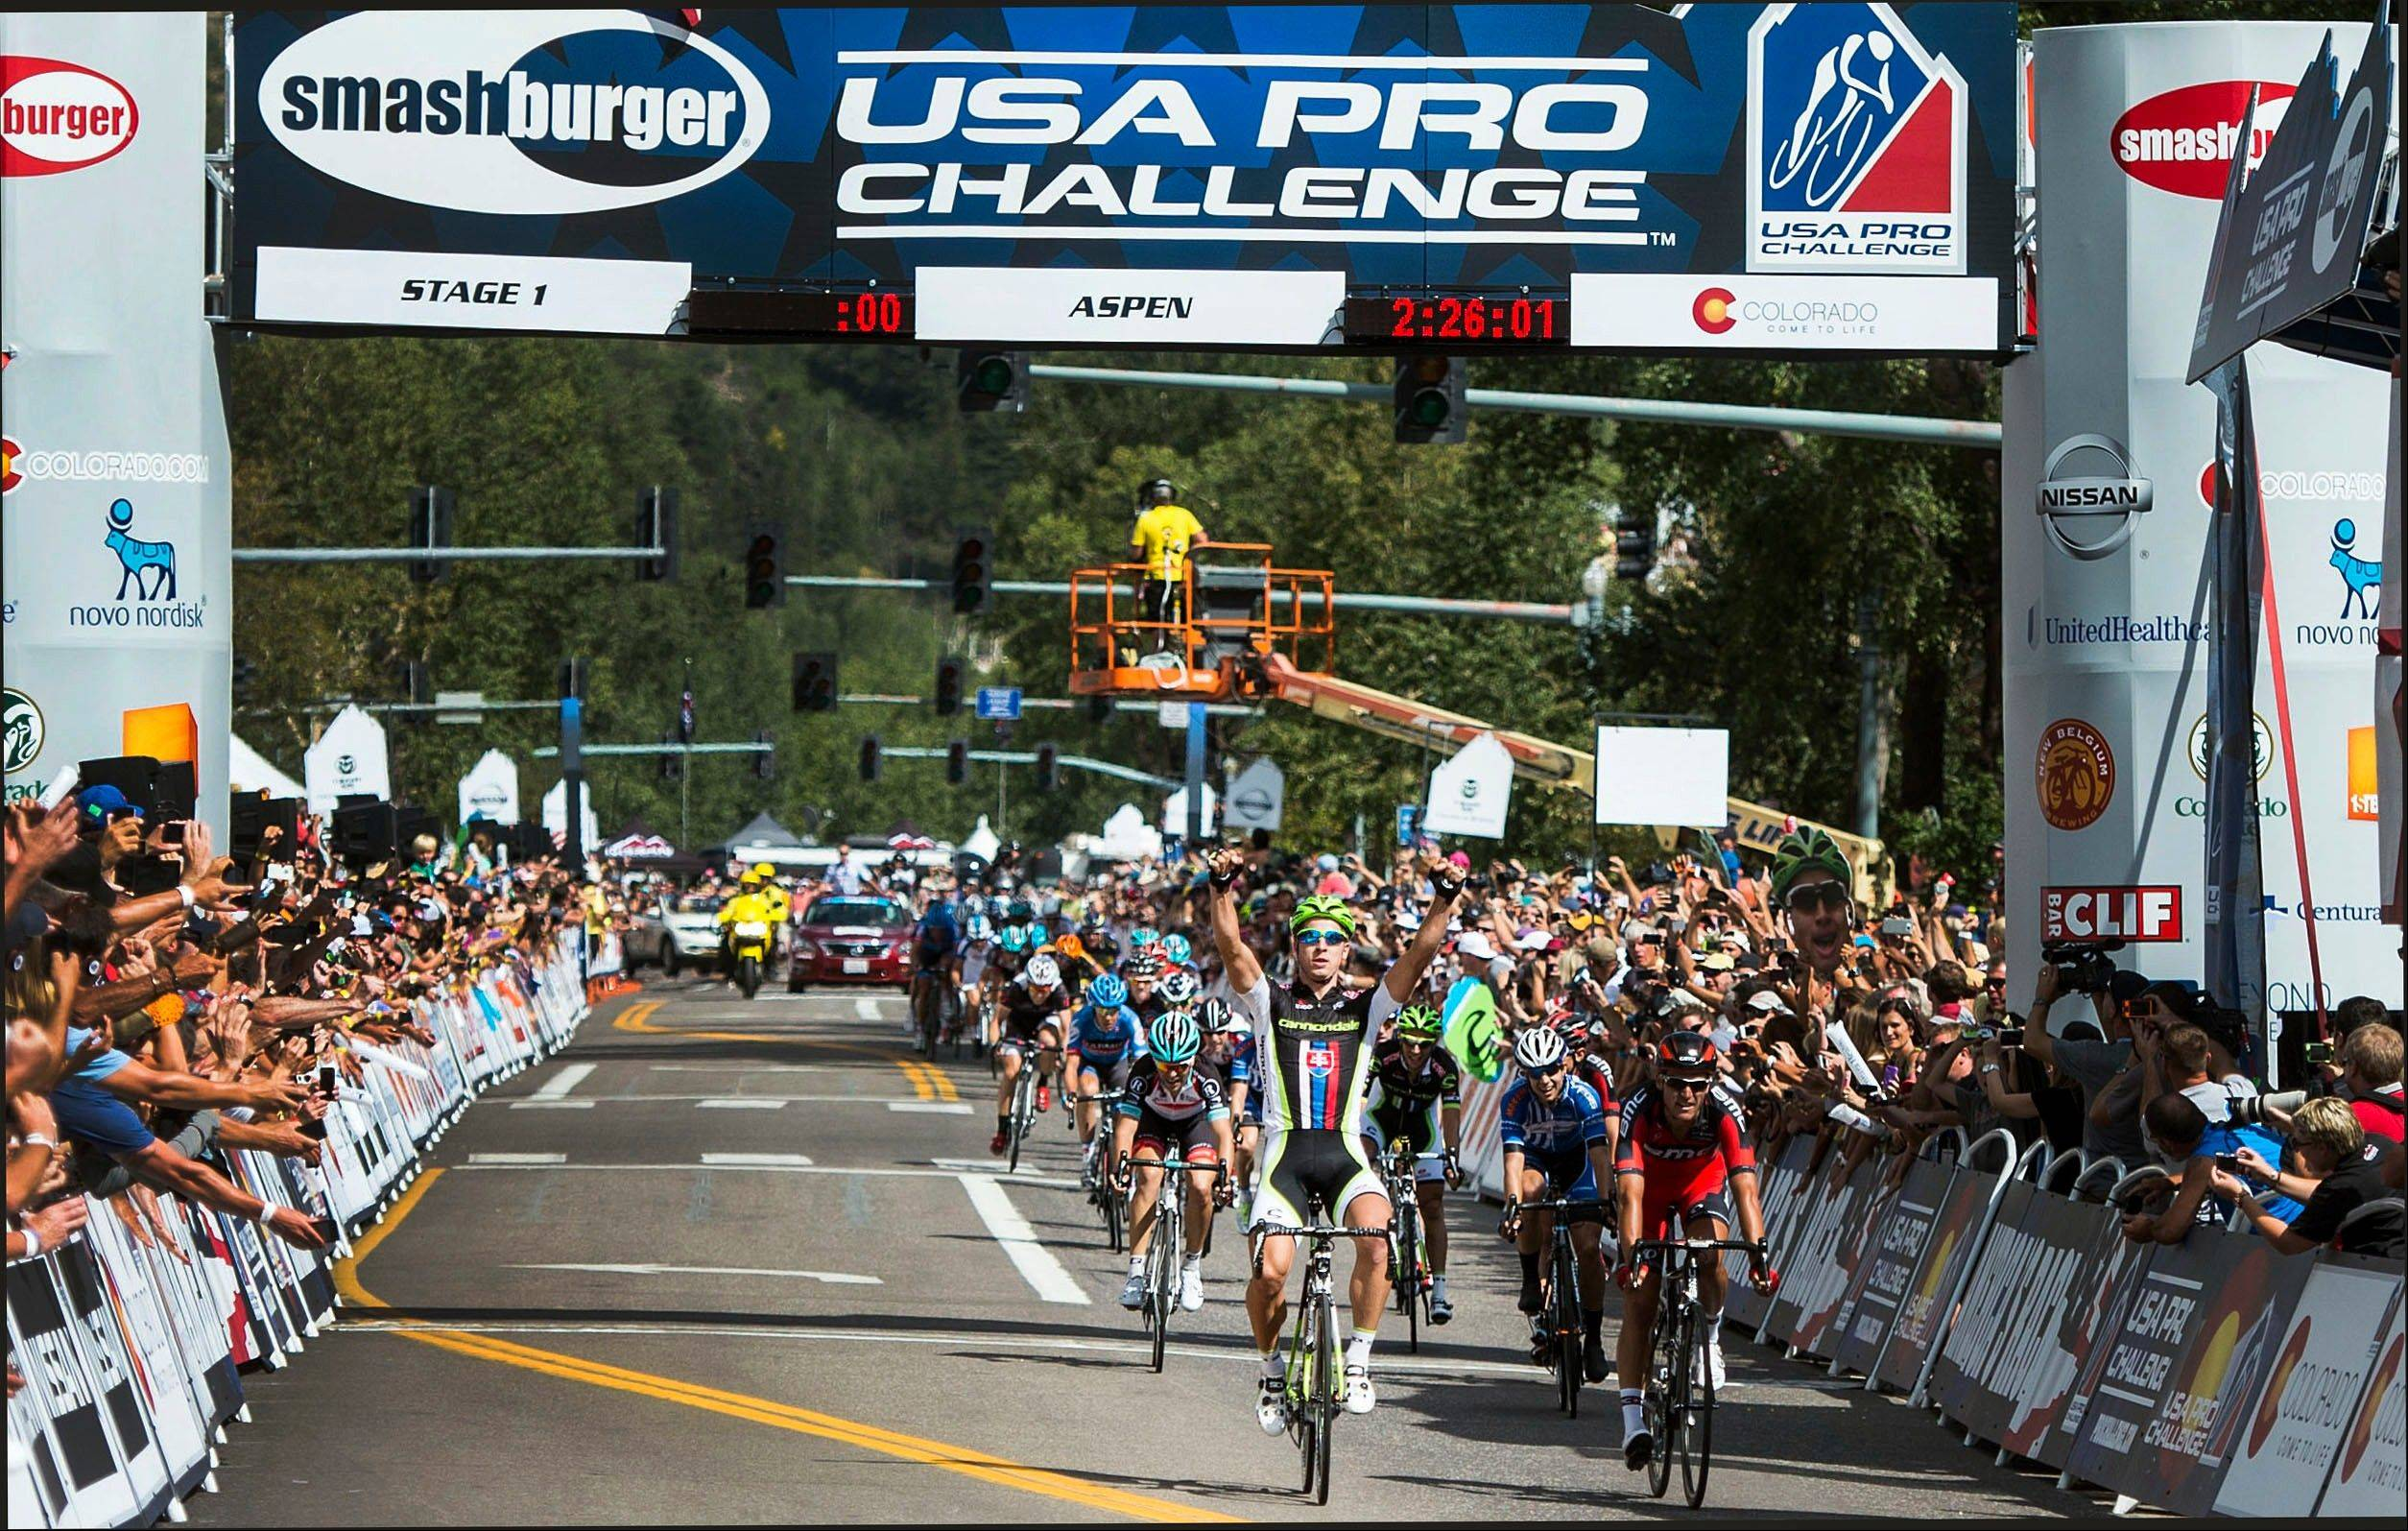 Peter Sagan of Team Cannondale crosses the finish line first in Monday's opening stage of the USA Pro Challenge in Aspen, Colo.